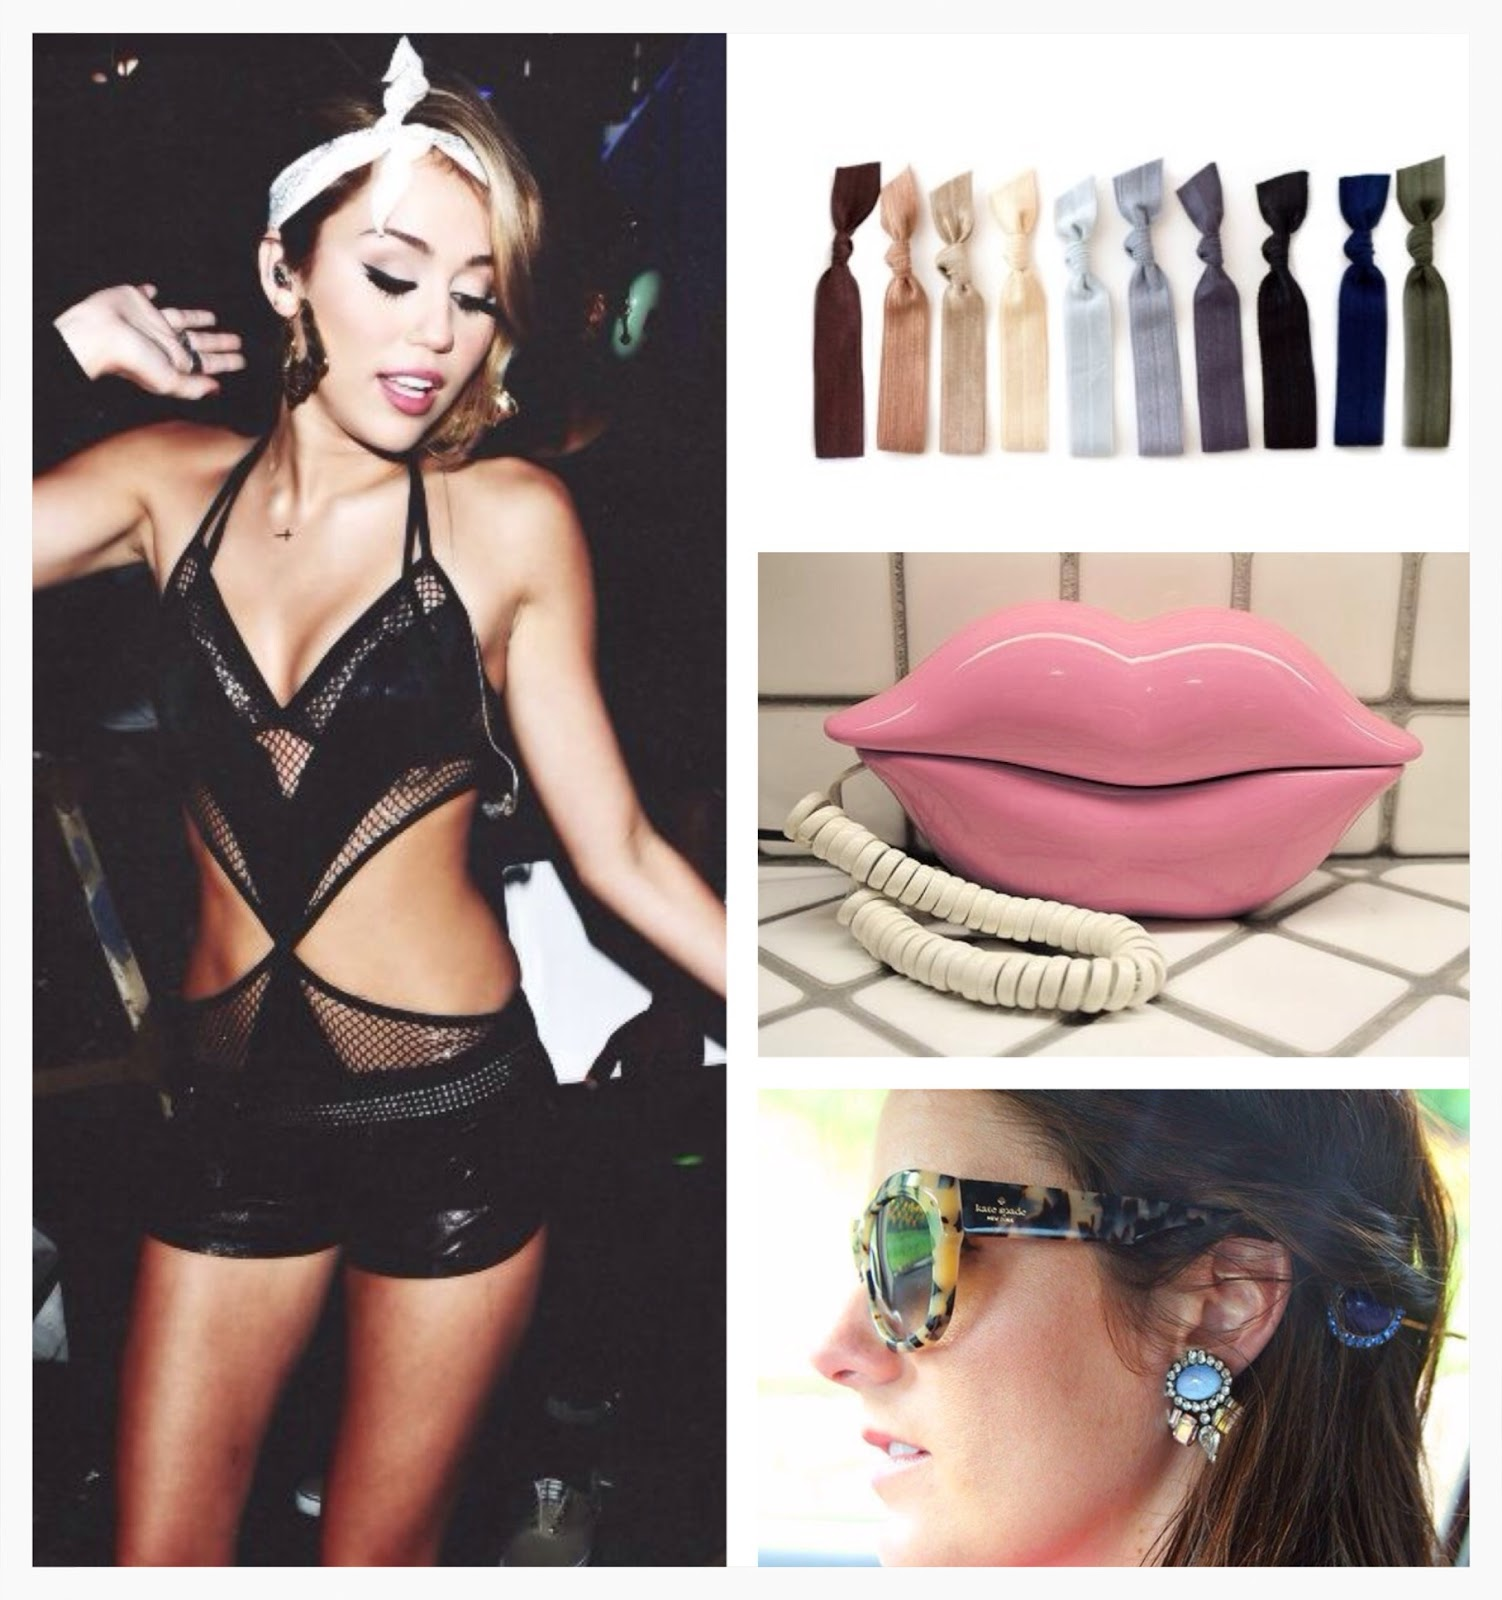 miley cyrus, lingerie, kitsch hair ties, pink lips telephone, kate spade tortoise shell thick frames, sunglasses